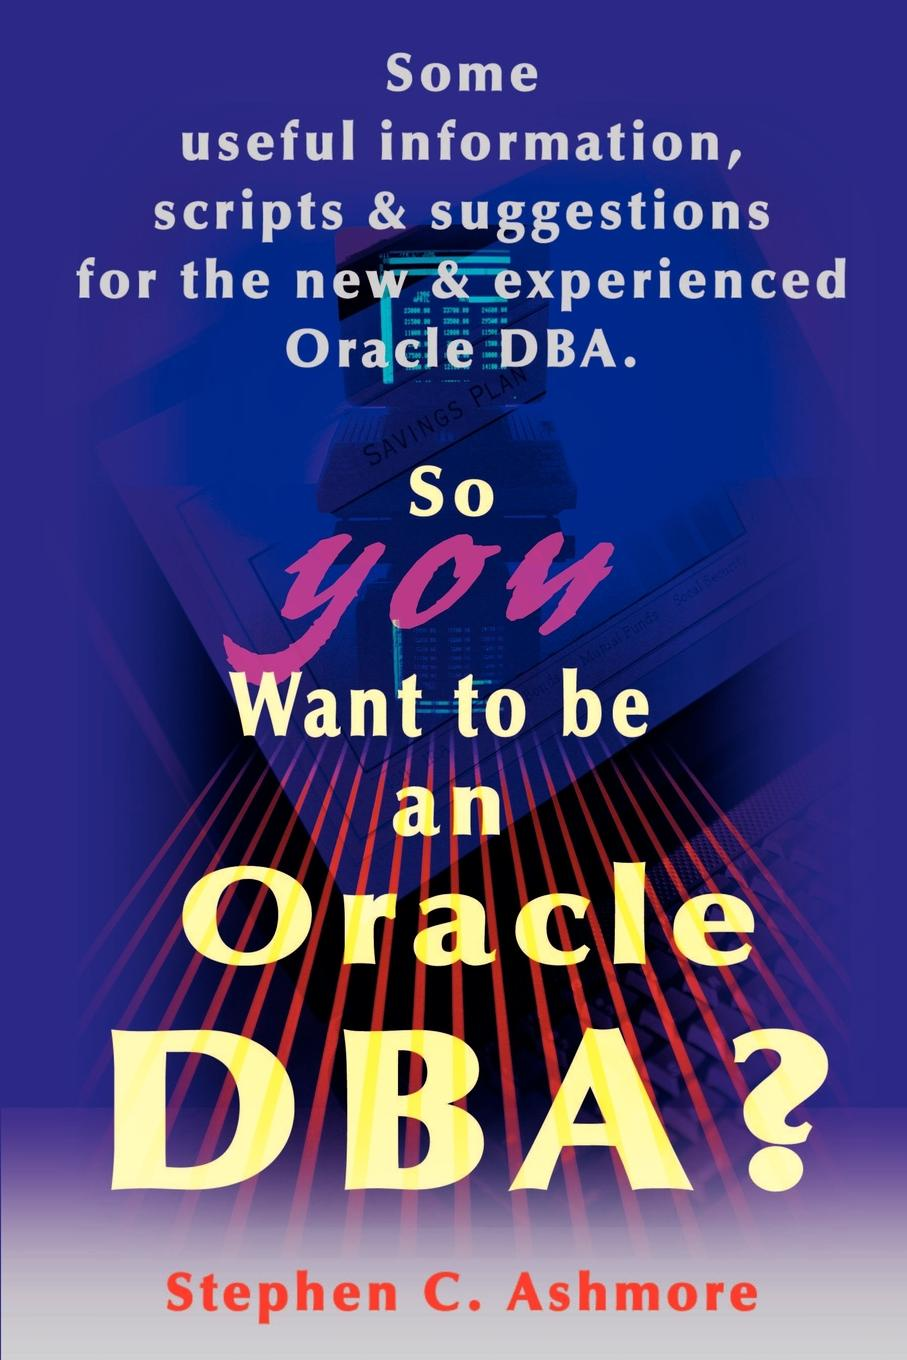 Stephen C. Ashmore So You Want to Be an Oracle DBA?. Some Useful Information, Scripts and Suggestions for the New and Experienced Oracle DBA tim hines the oracle